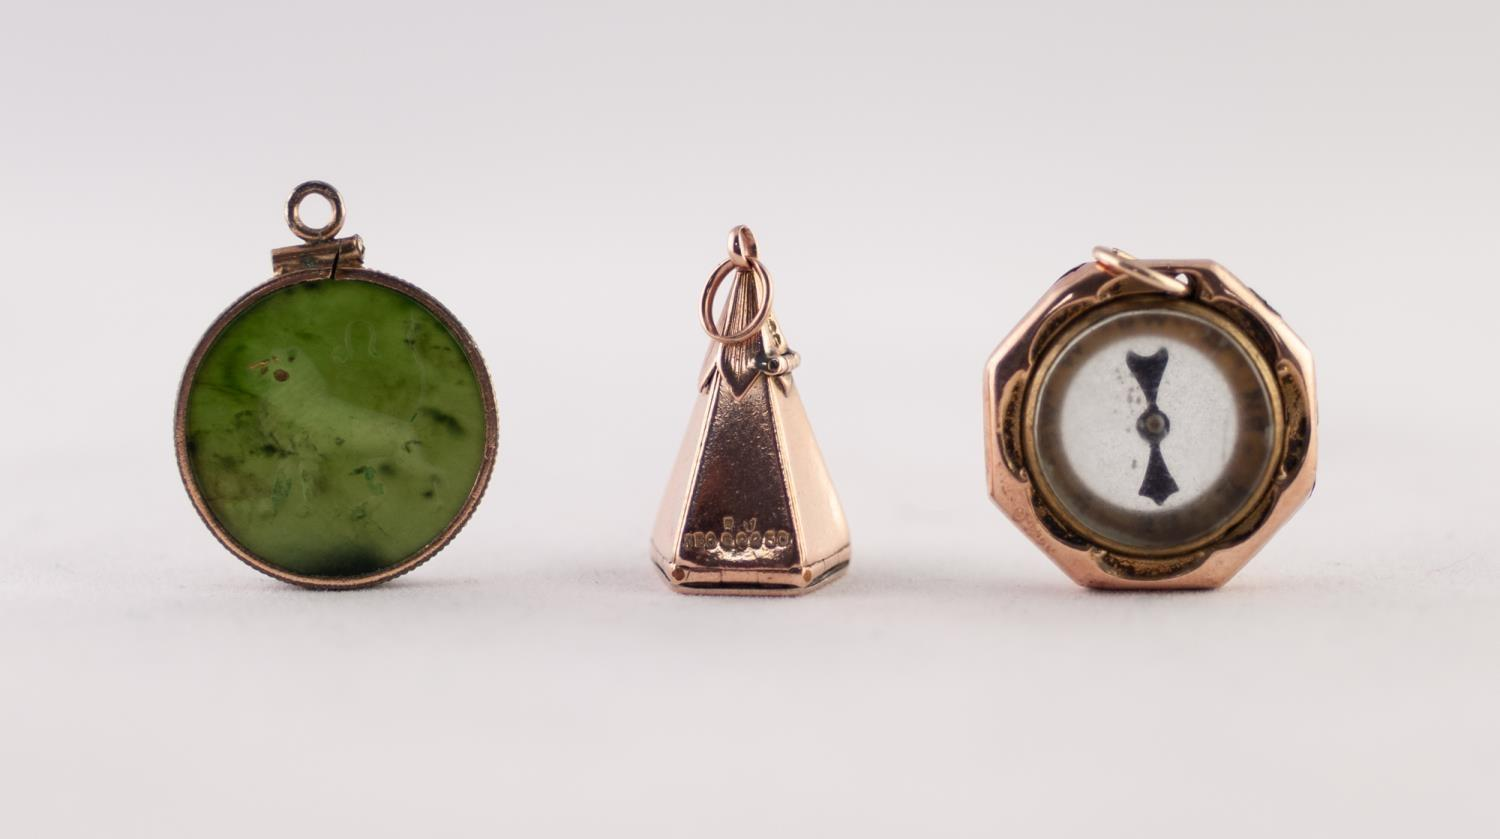 Lot 228 - MASONIC STAR CHARM, A NEPHRITE INTAGLIO AND A COMPASS FOB, 13.39g gross (3)